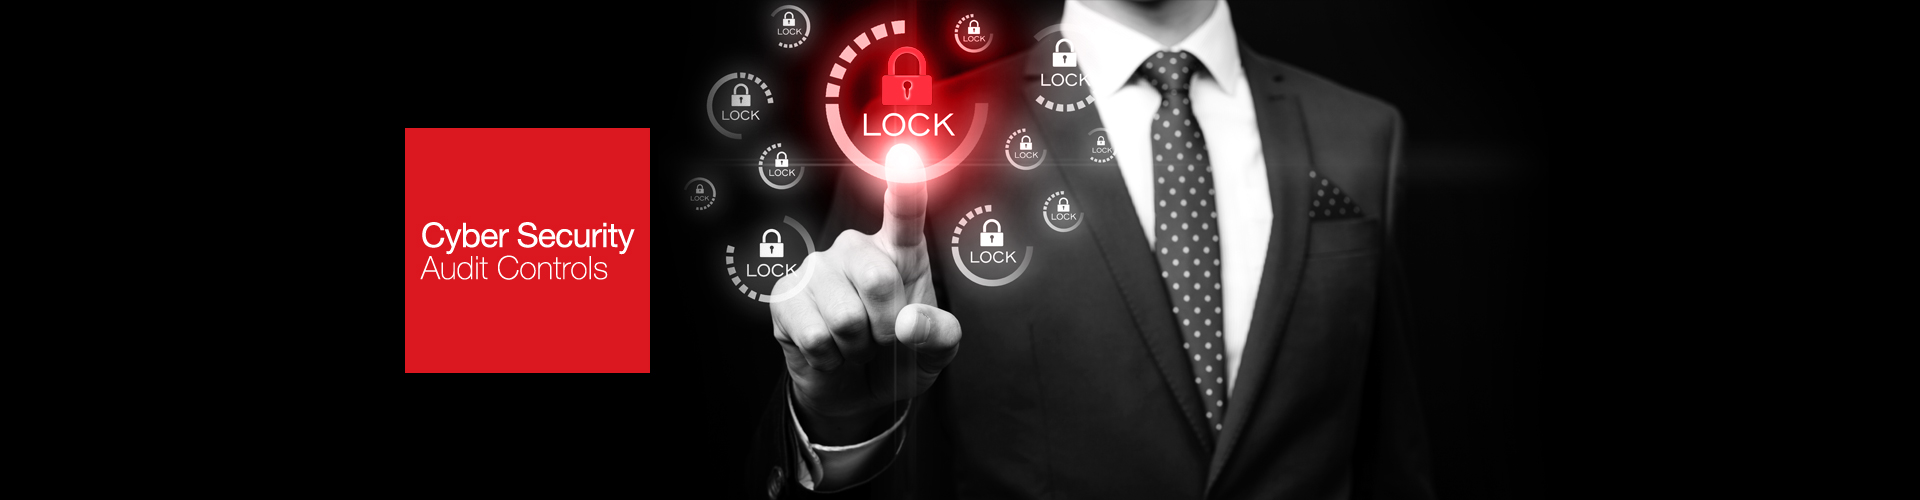 CYBER SECURITY AUDIT CONTROLS